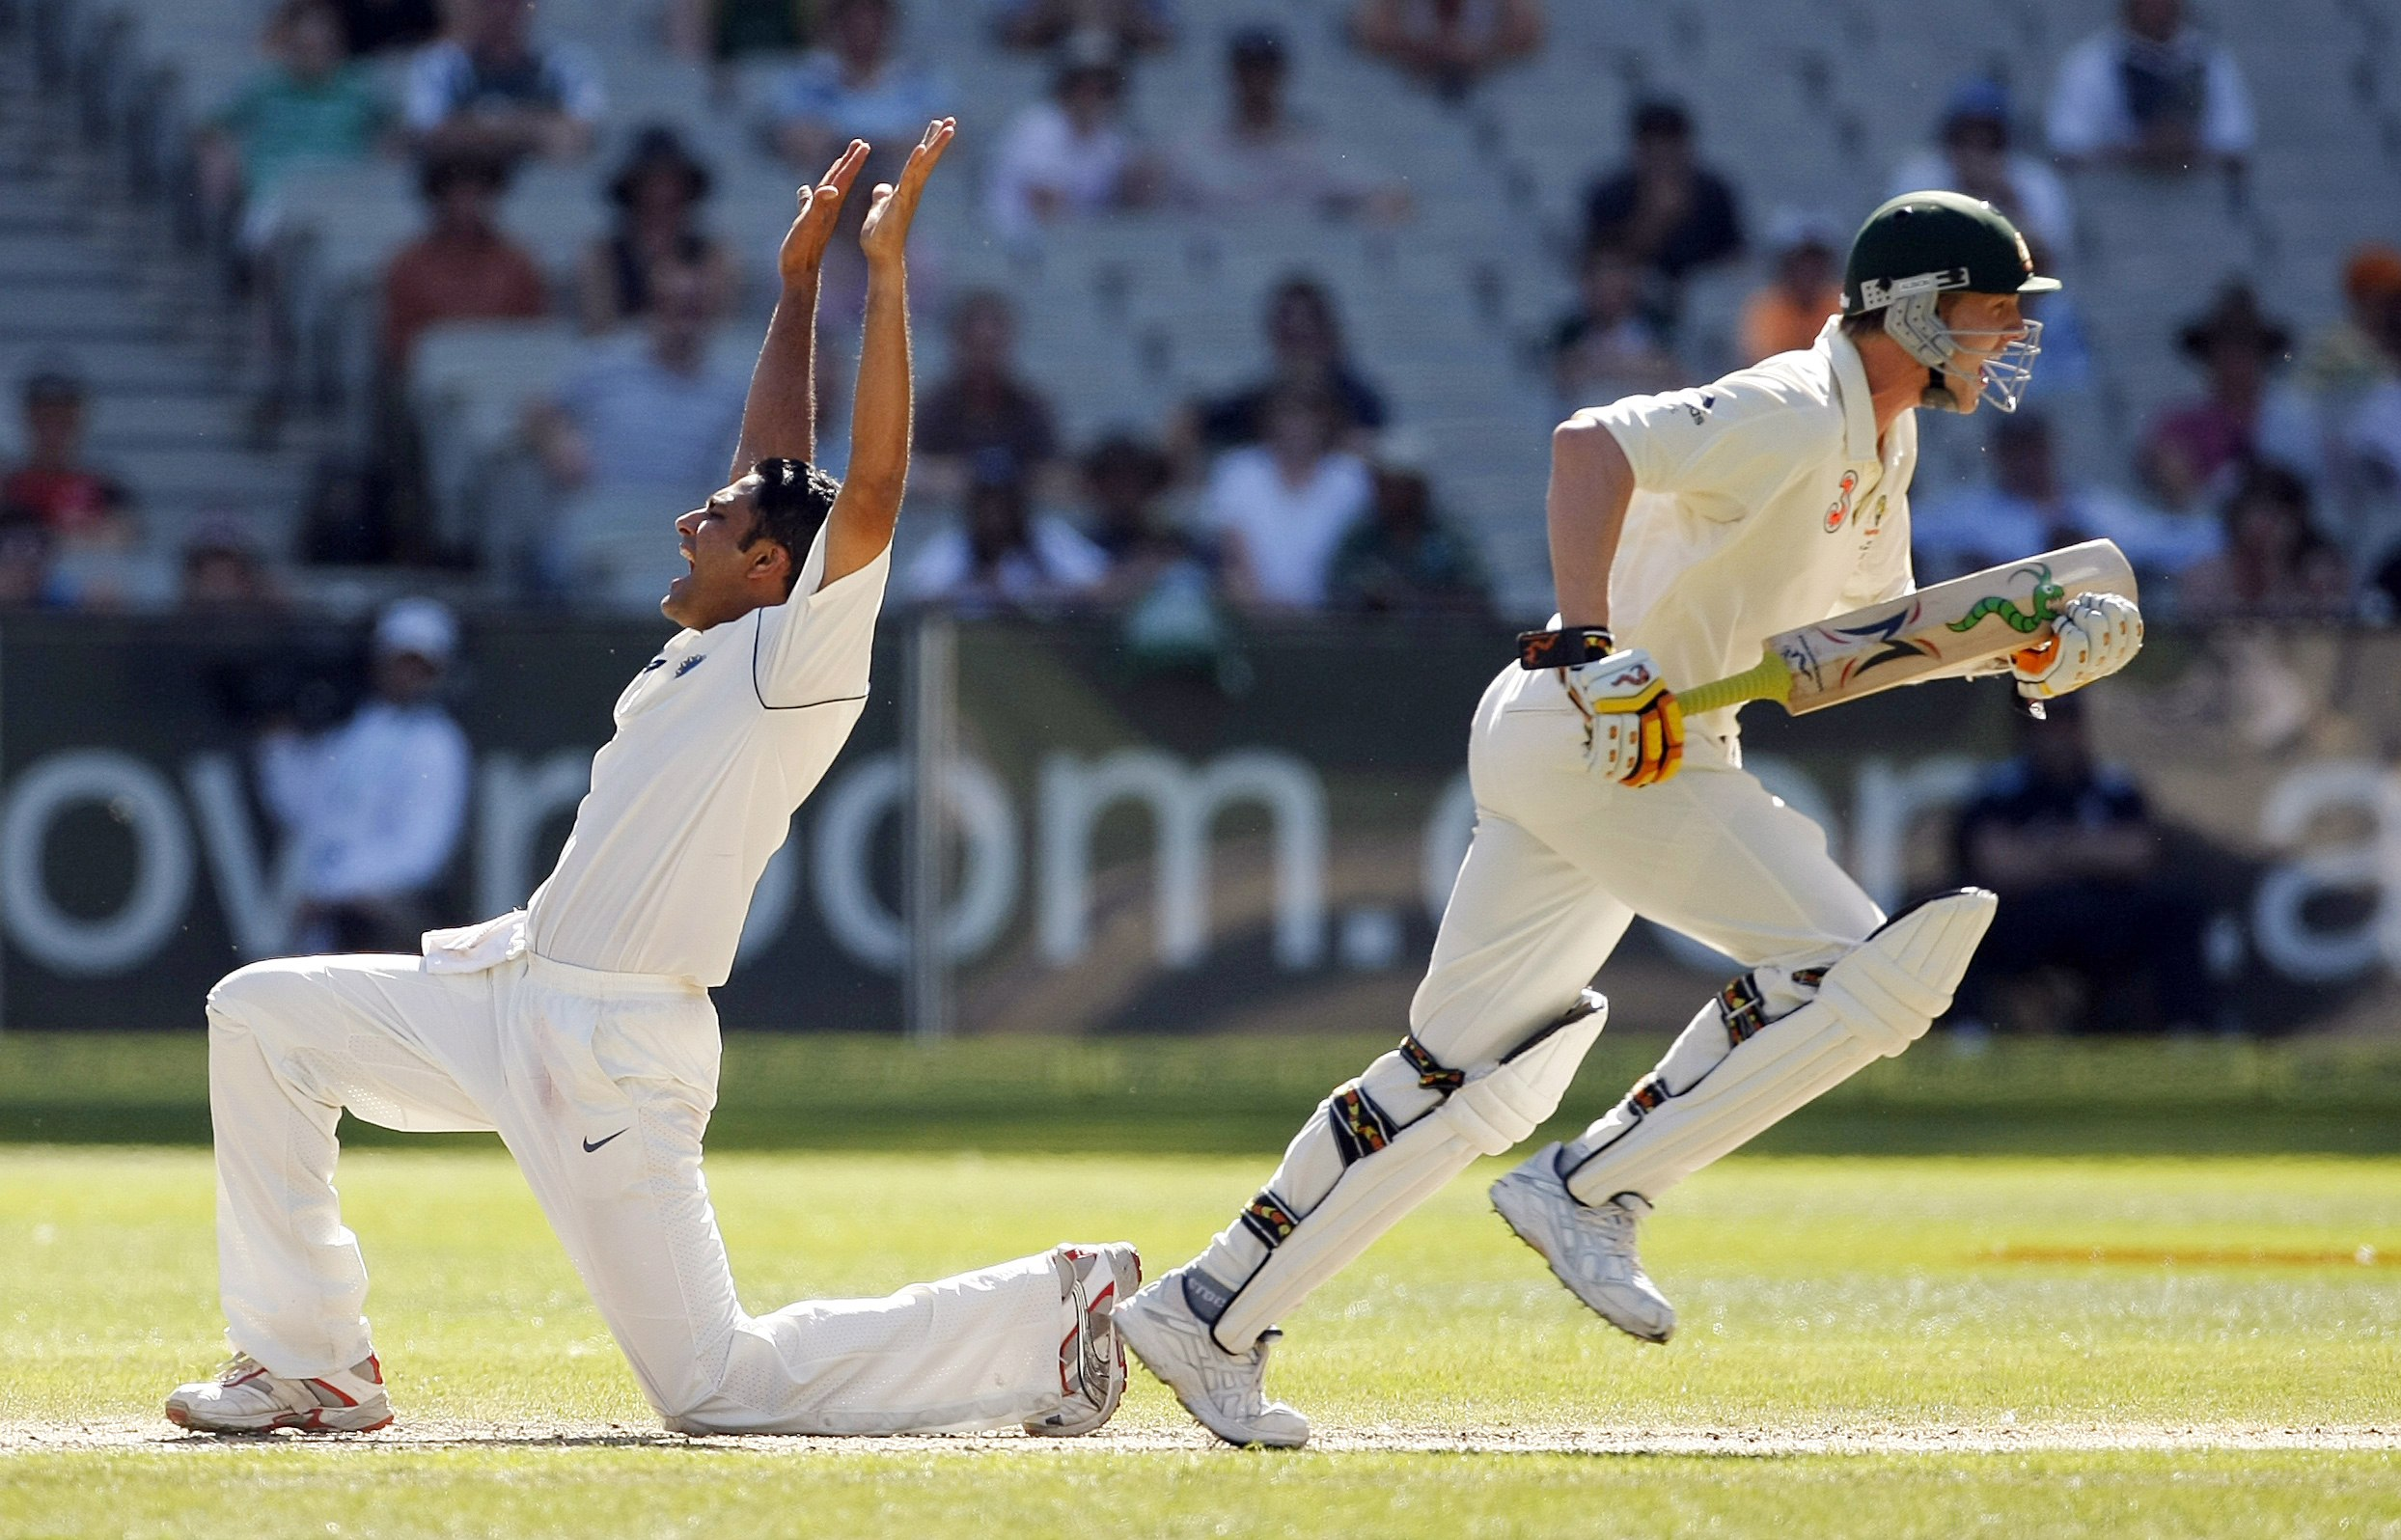 India's captain Anil Kumble, left, makes an unsuccessful appeal as Australia's Brett Lee runs past during the third day's play of their first test cr...